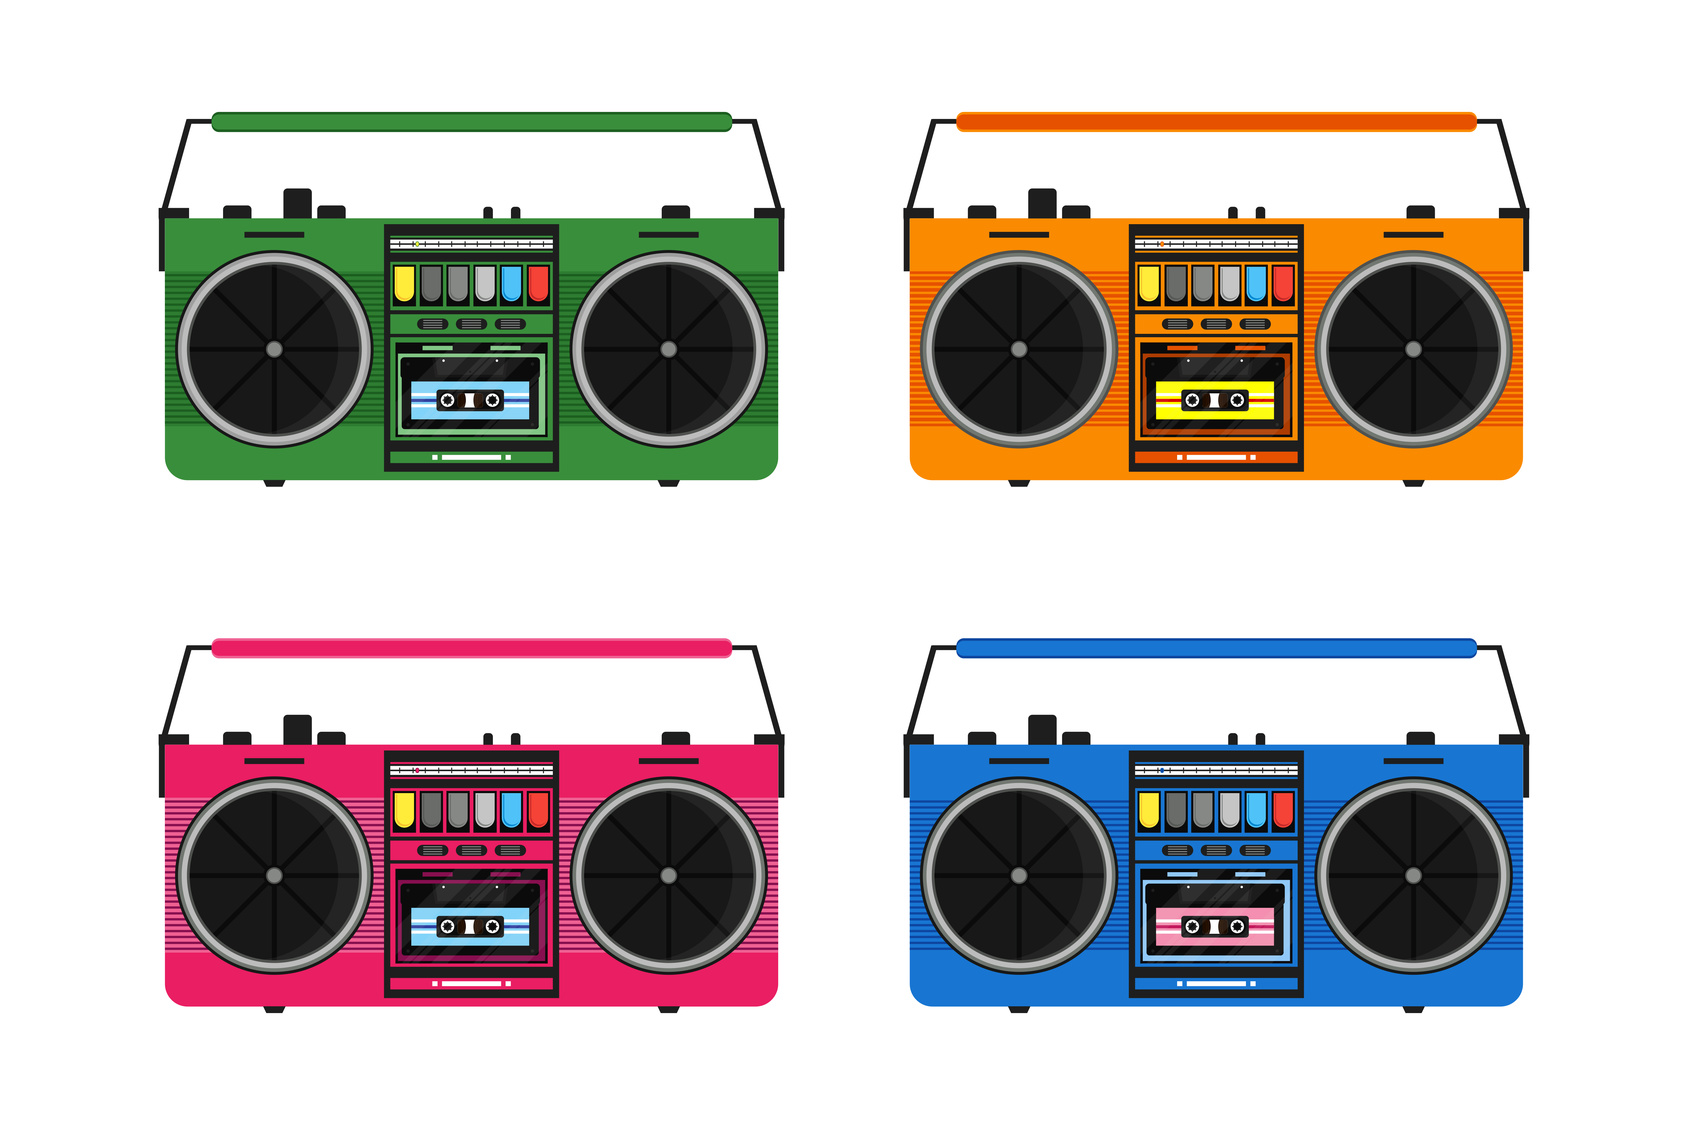 Paint Colors For Car >> 10 Awesome Ways to Use Your Retro Boombox - SoundSpare